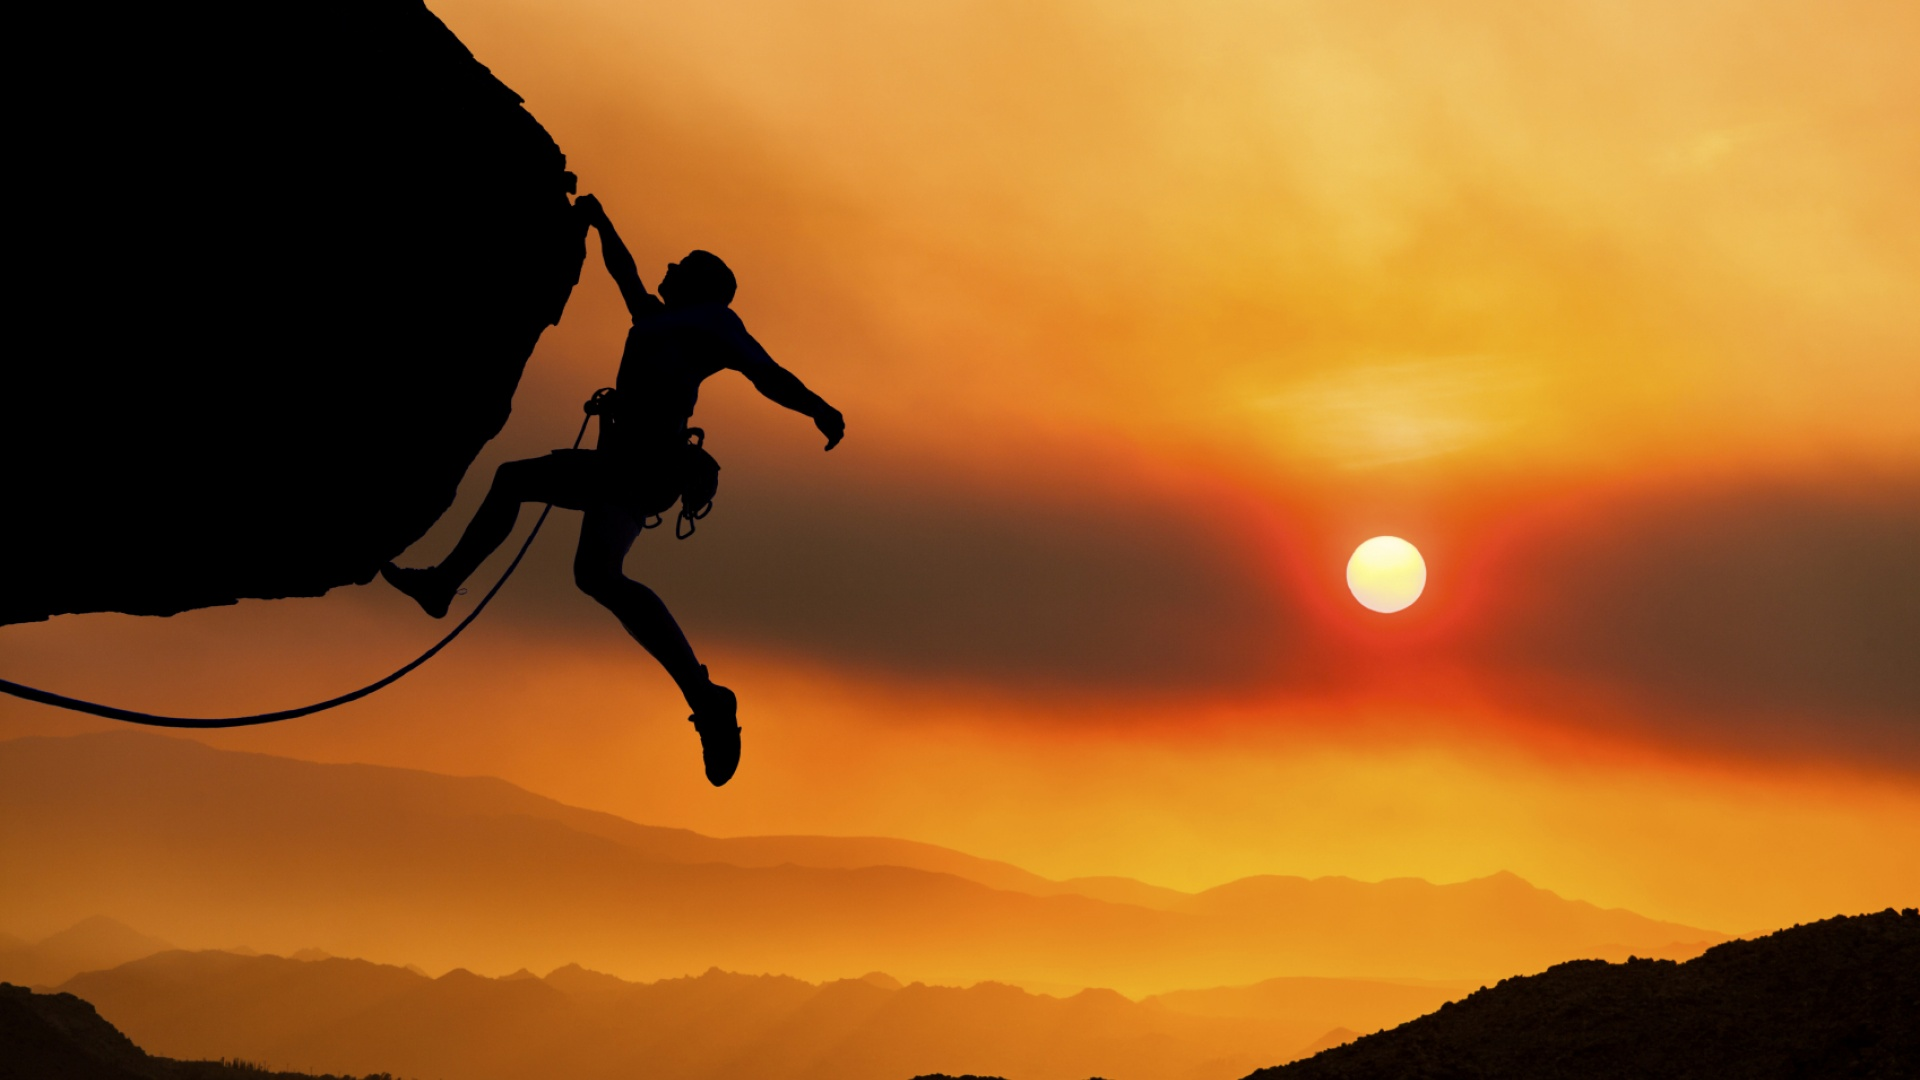 Experience Exciting Rock Climbing From The Beginning